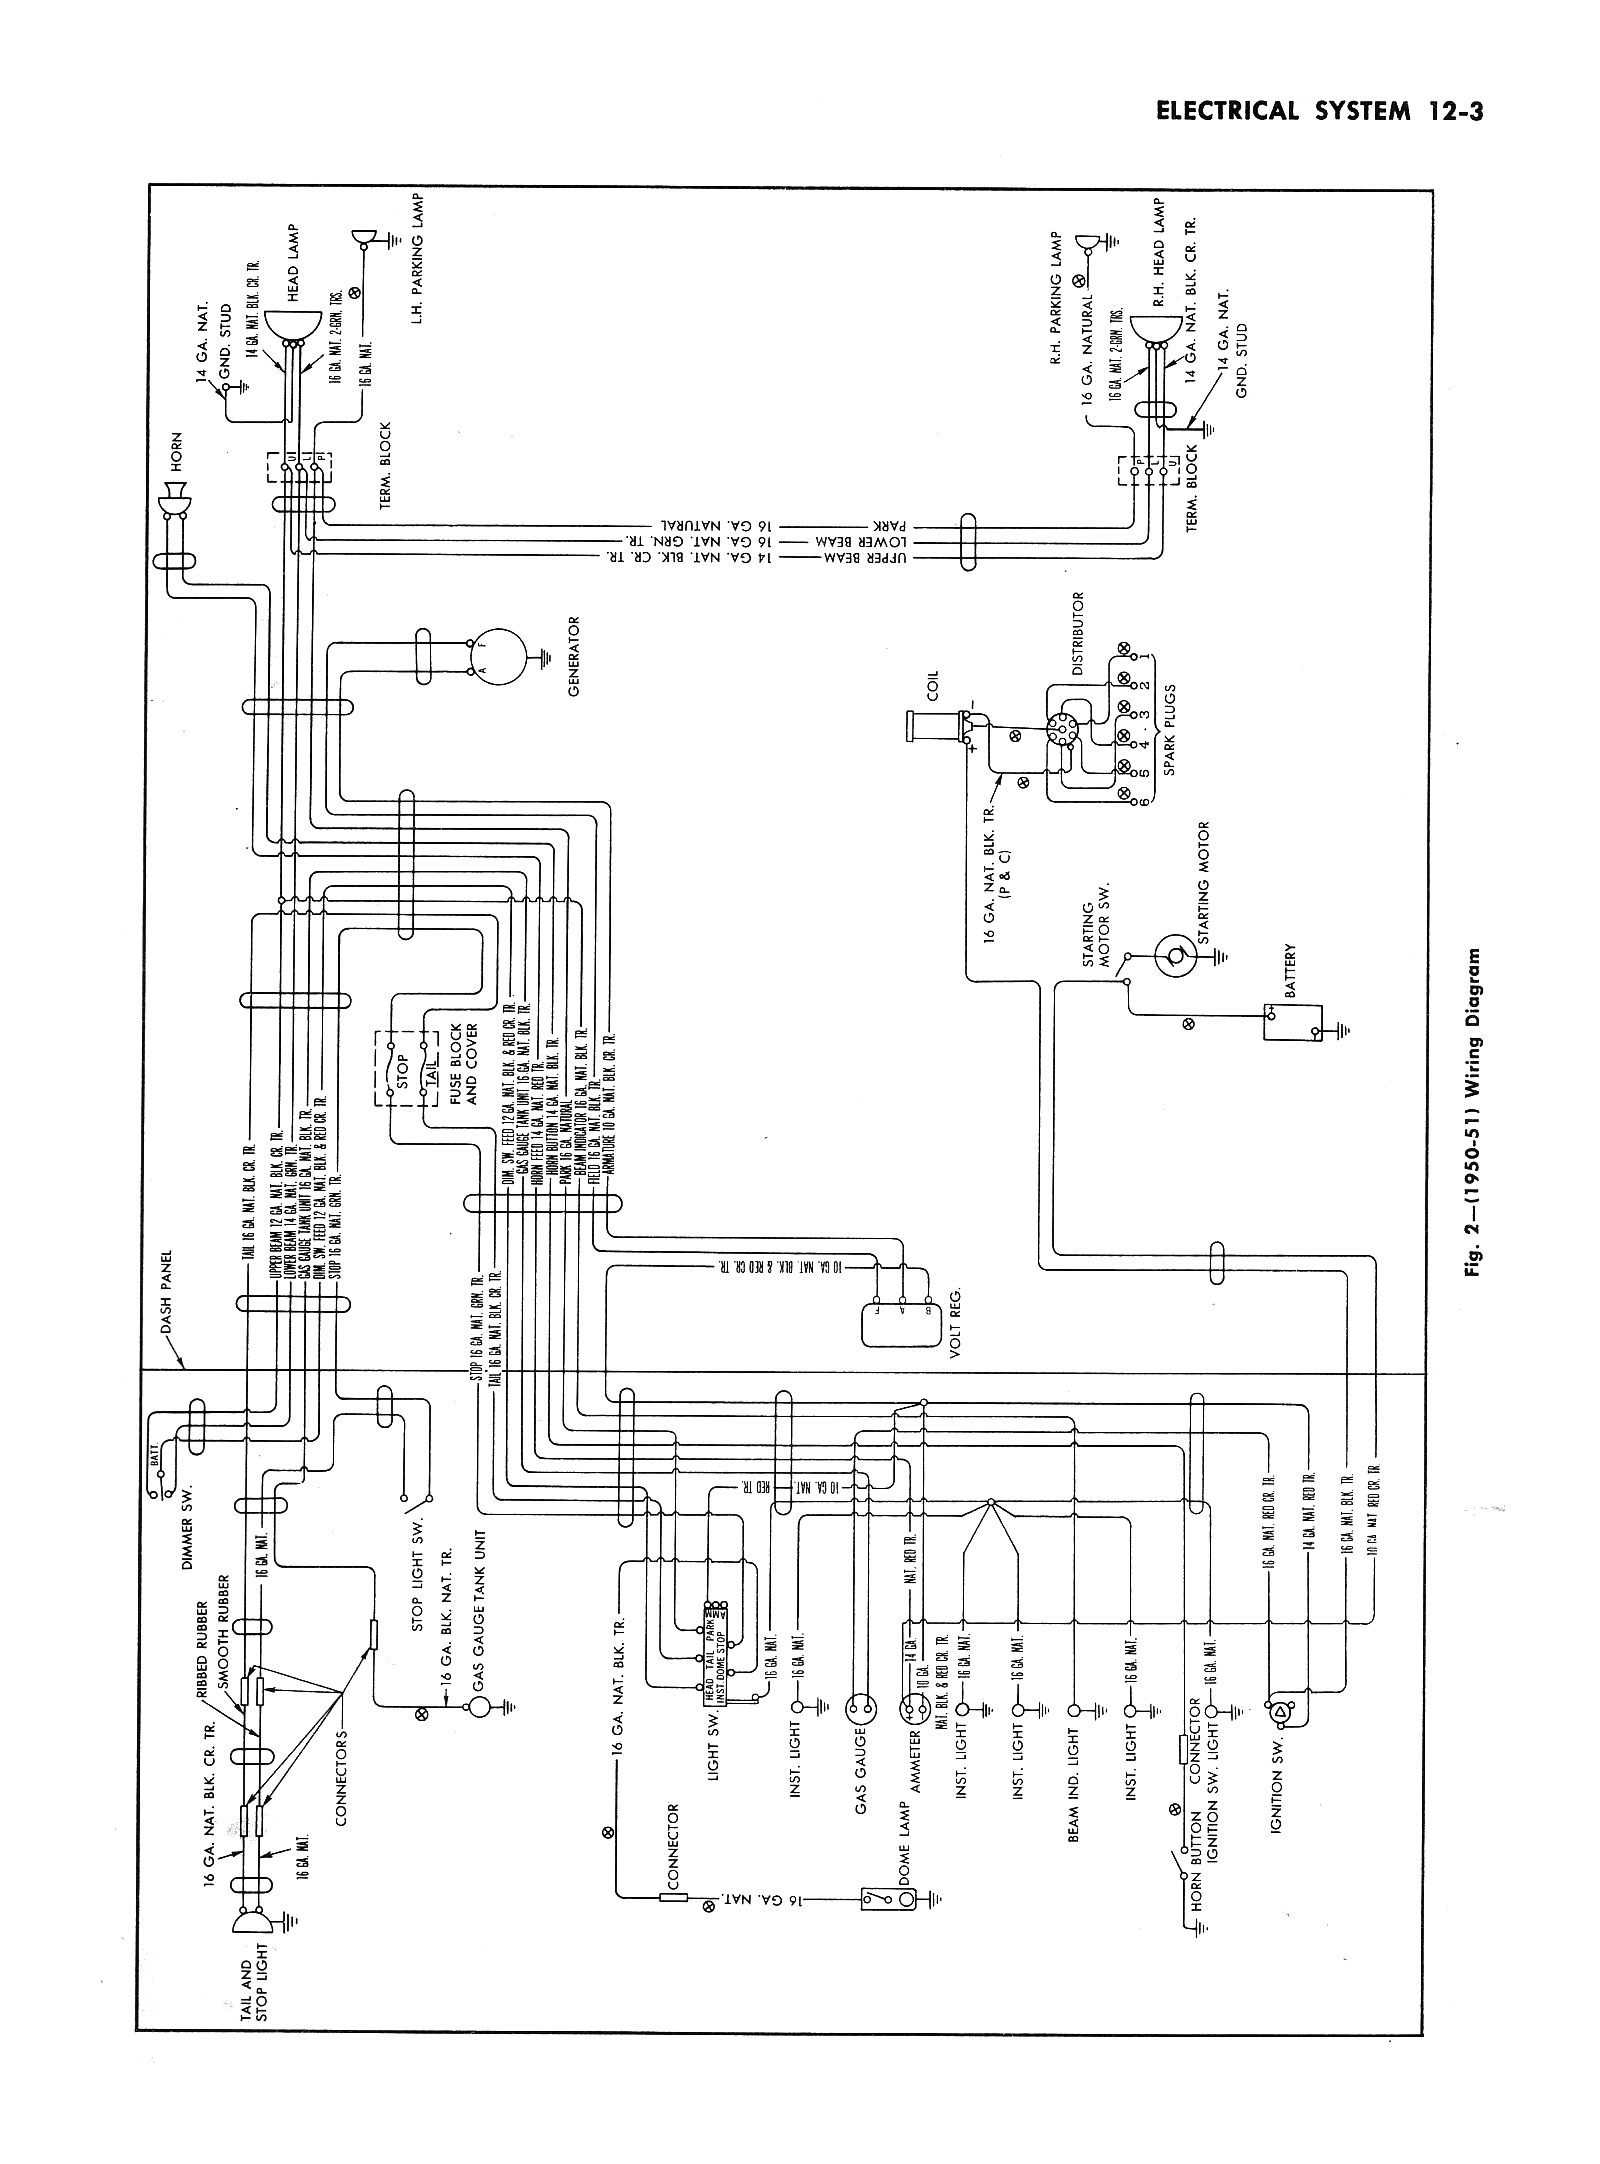 1956 Buick Wiring Diagram